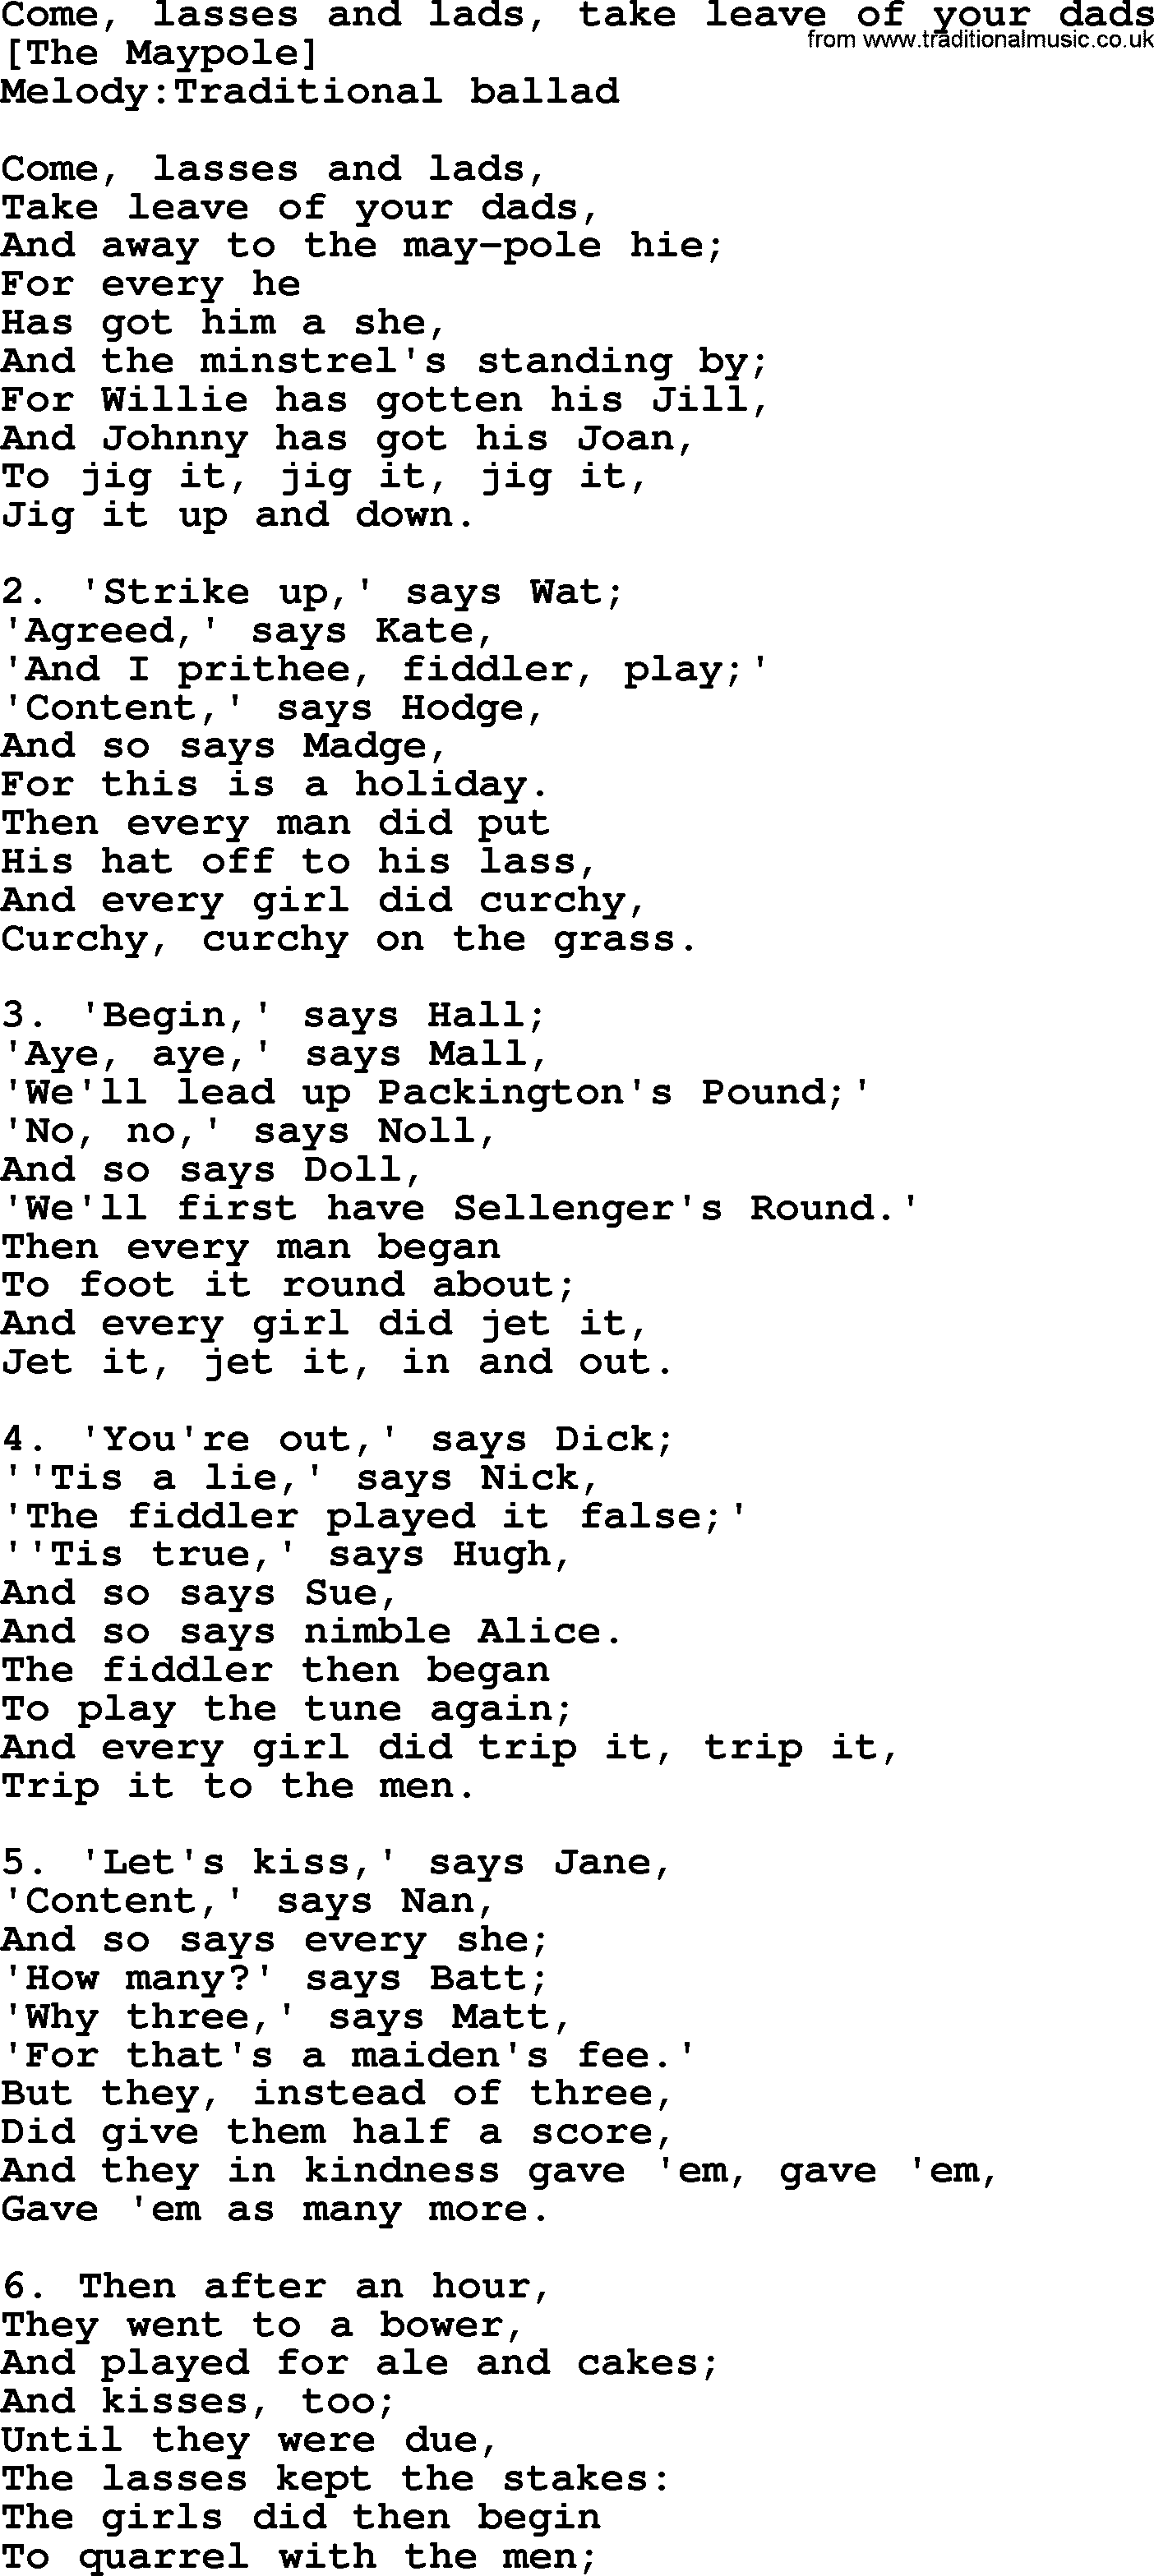 Old English Song Lyrics For Come Lasses And Lads Take Leave Of